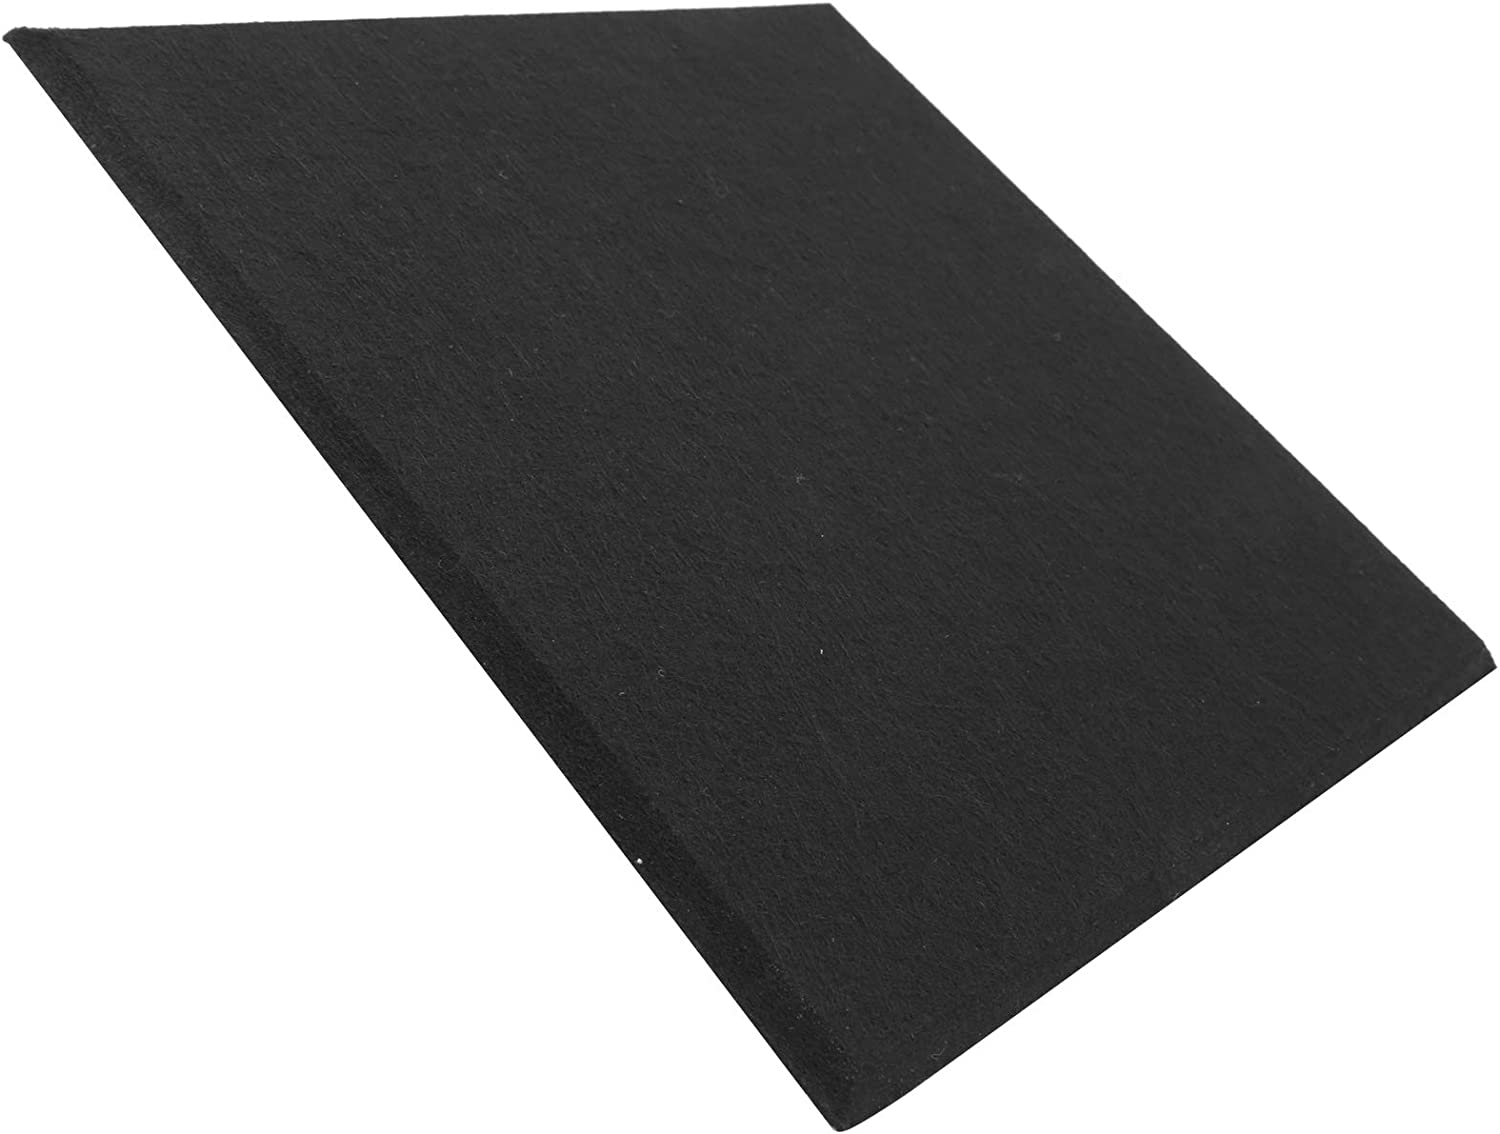 6Pcs Sound‑Absorbing Board, Acoustic Polyester Fiber Soundproofing Fireproof Silencer Panels for Recording Studio, Home Theater(black)